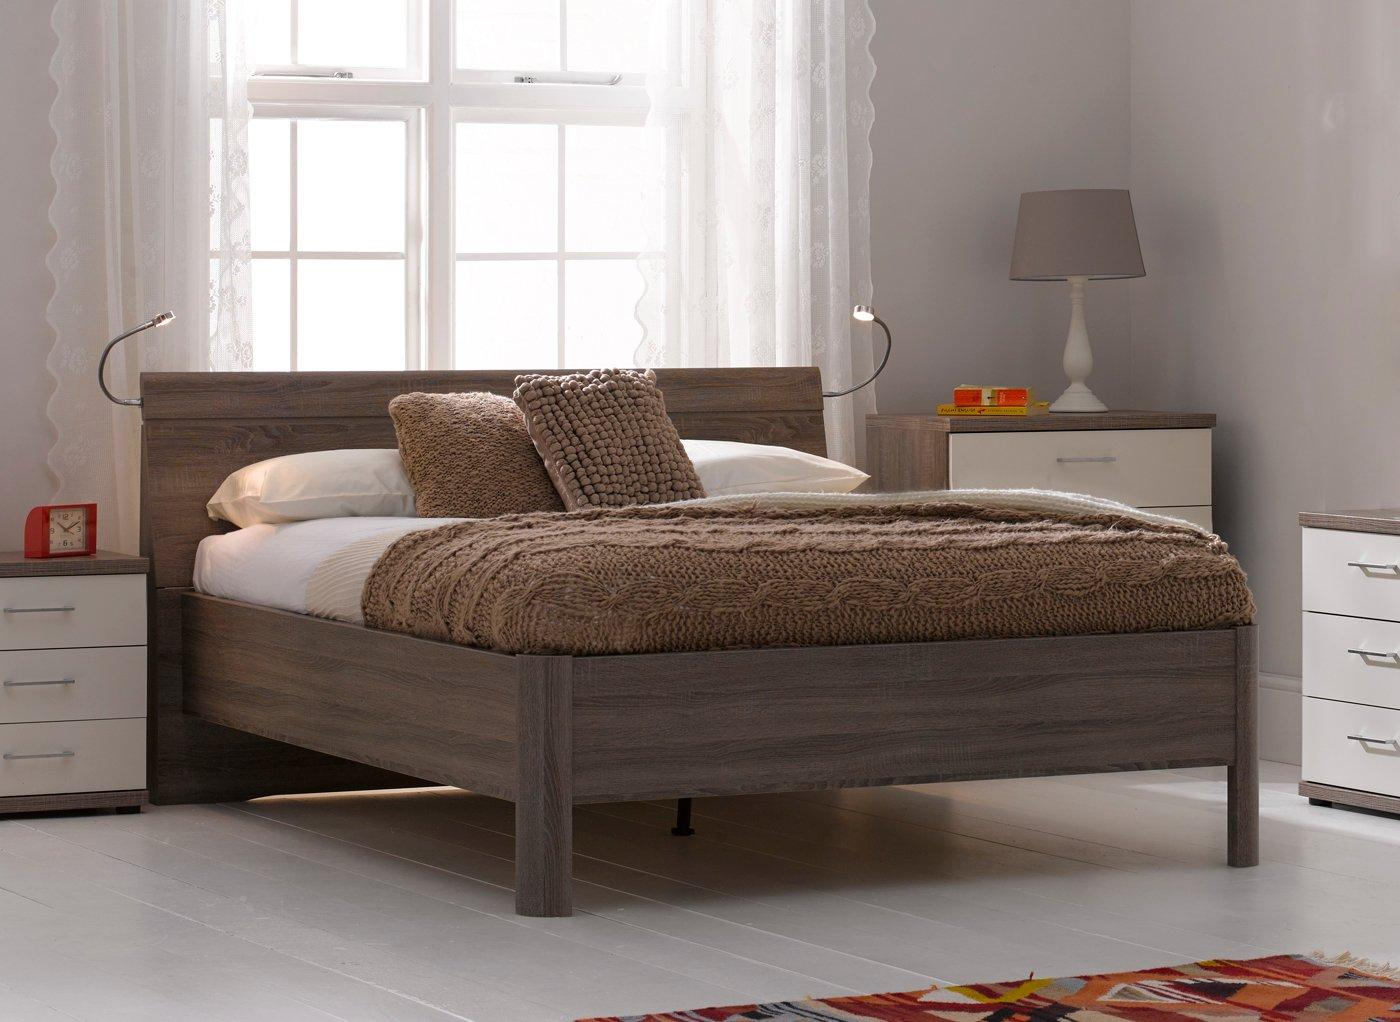 Single Mattresses Melbourne Melbourne Bed Frame